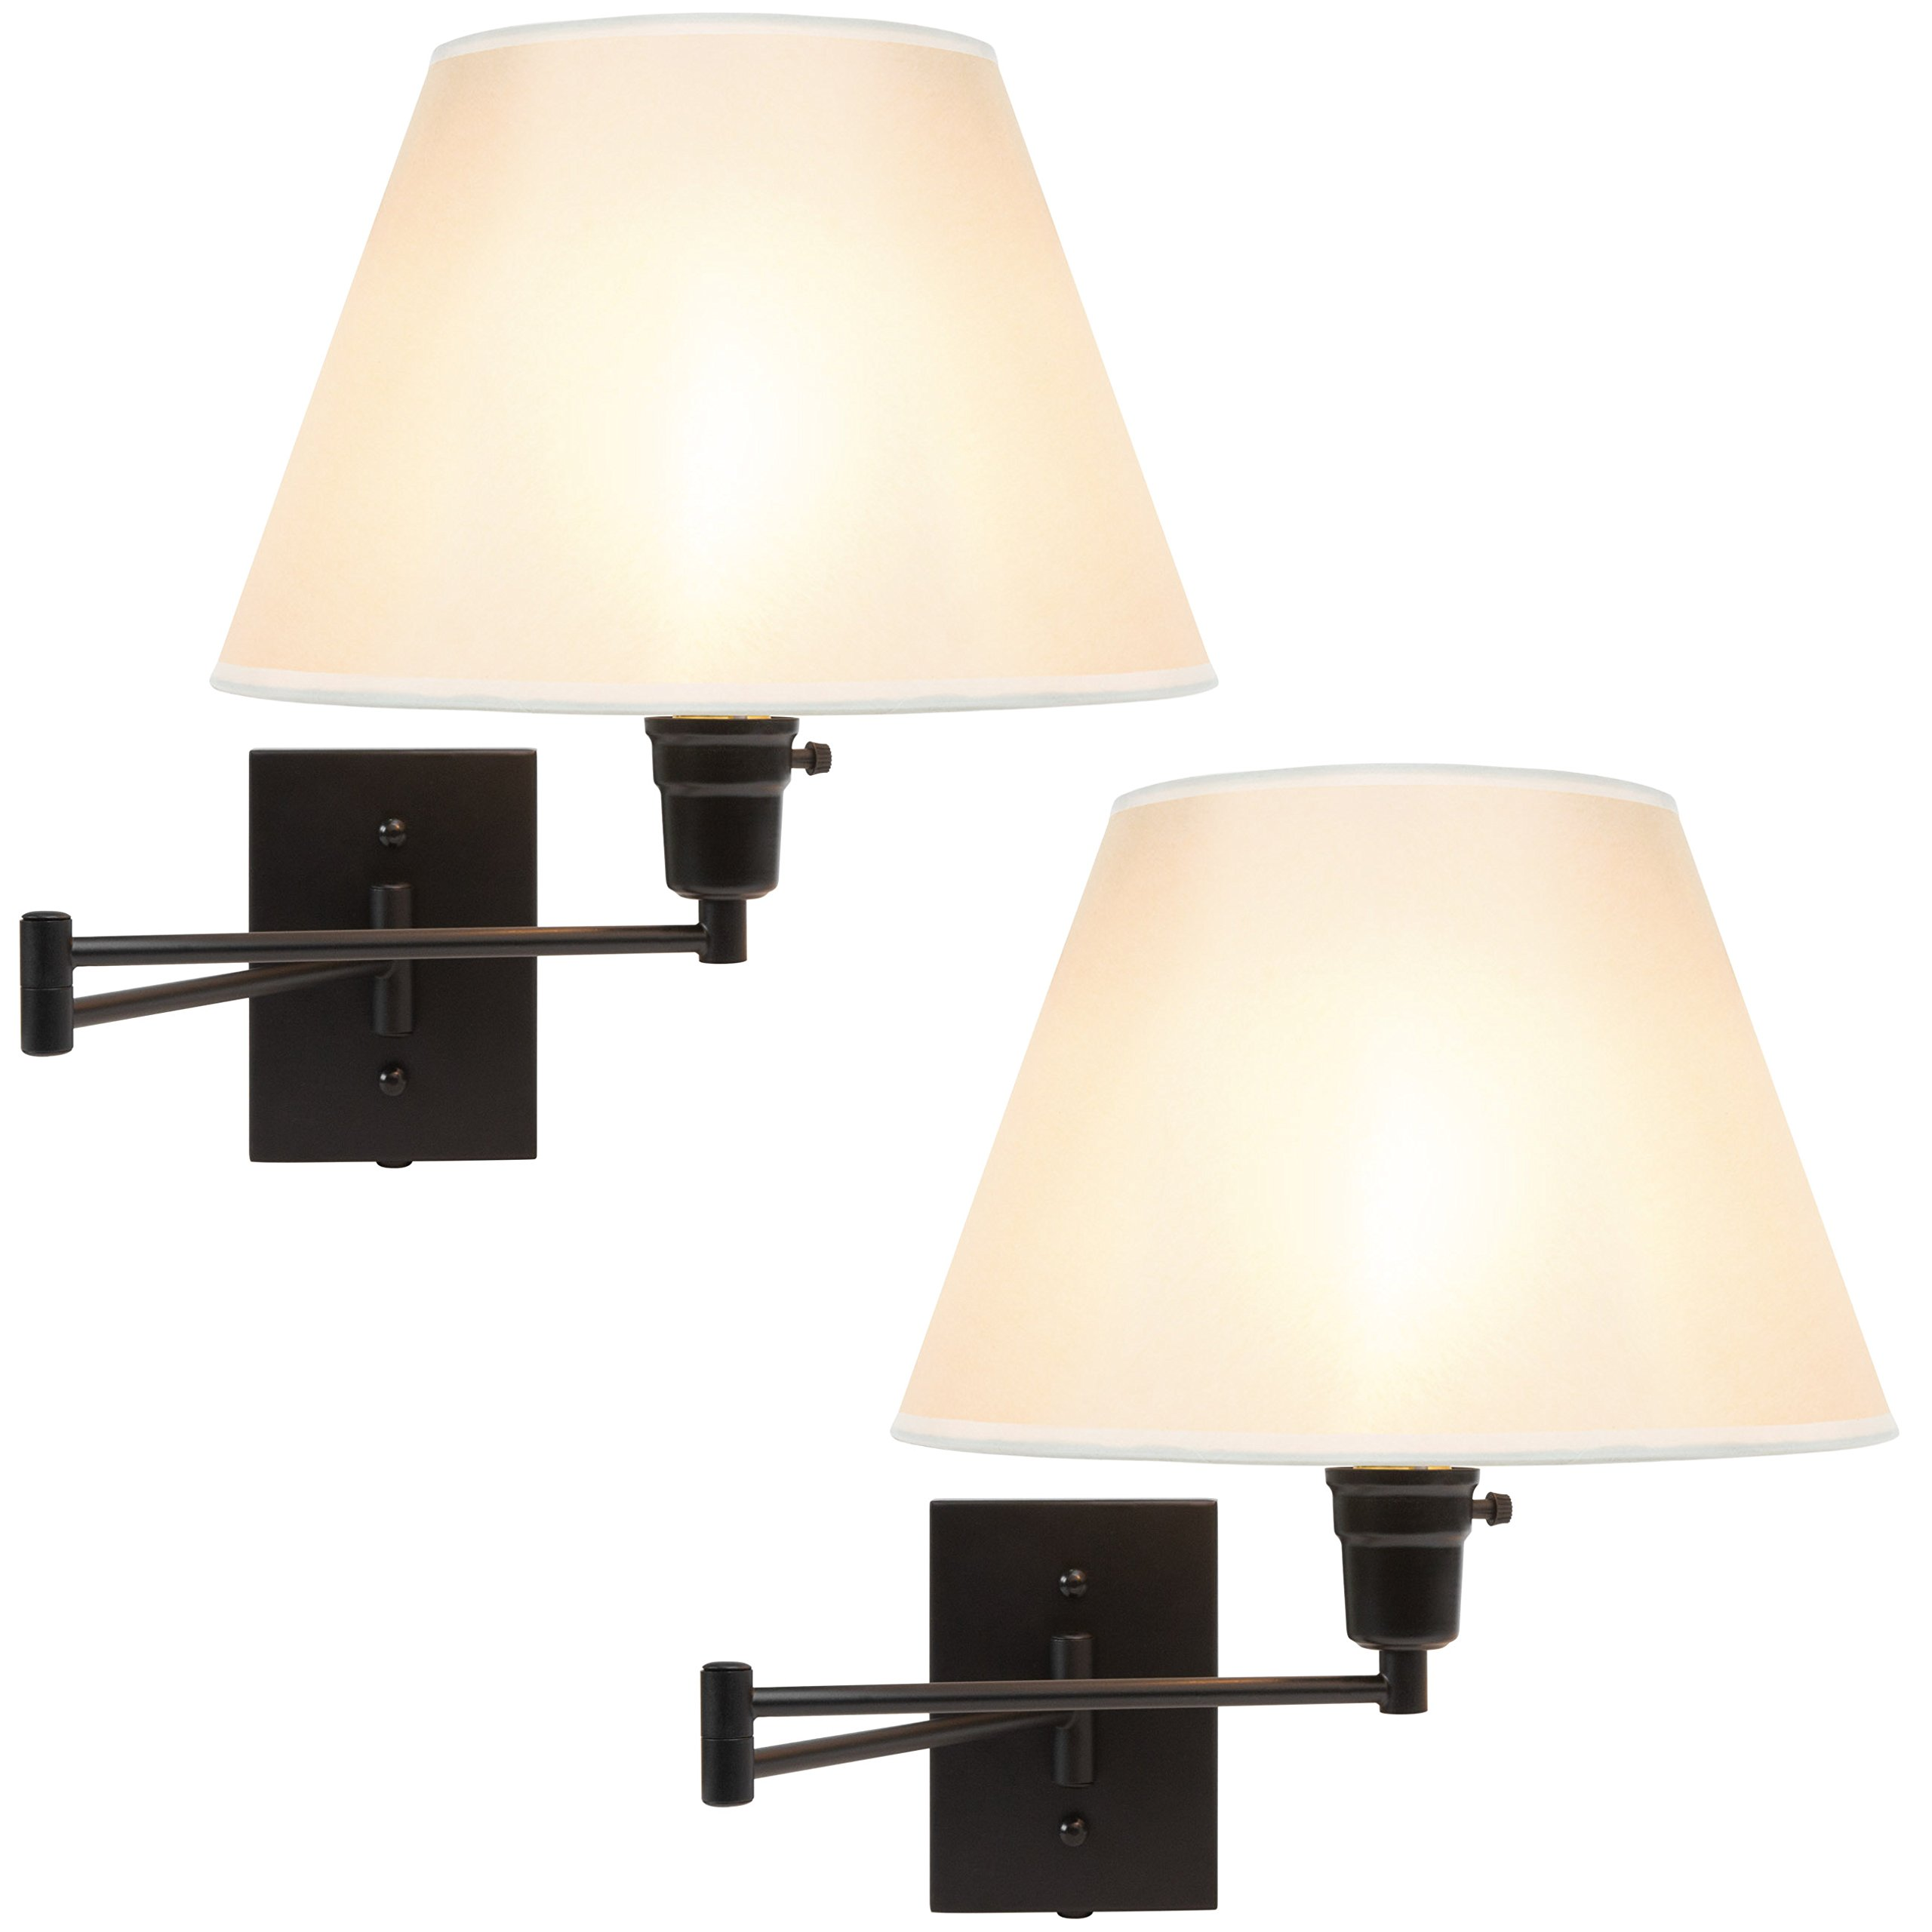 Best Choice Products Set of 2 Swing Arm Wall Lamp Sconces for Living Room, Bedroom, Entryway w/Beige Shade, Cord Cover - Matte Black